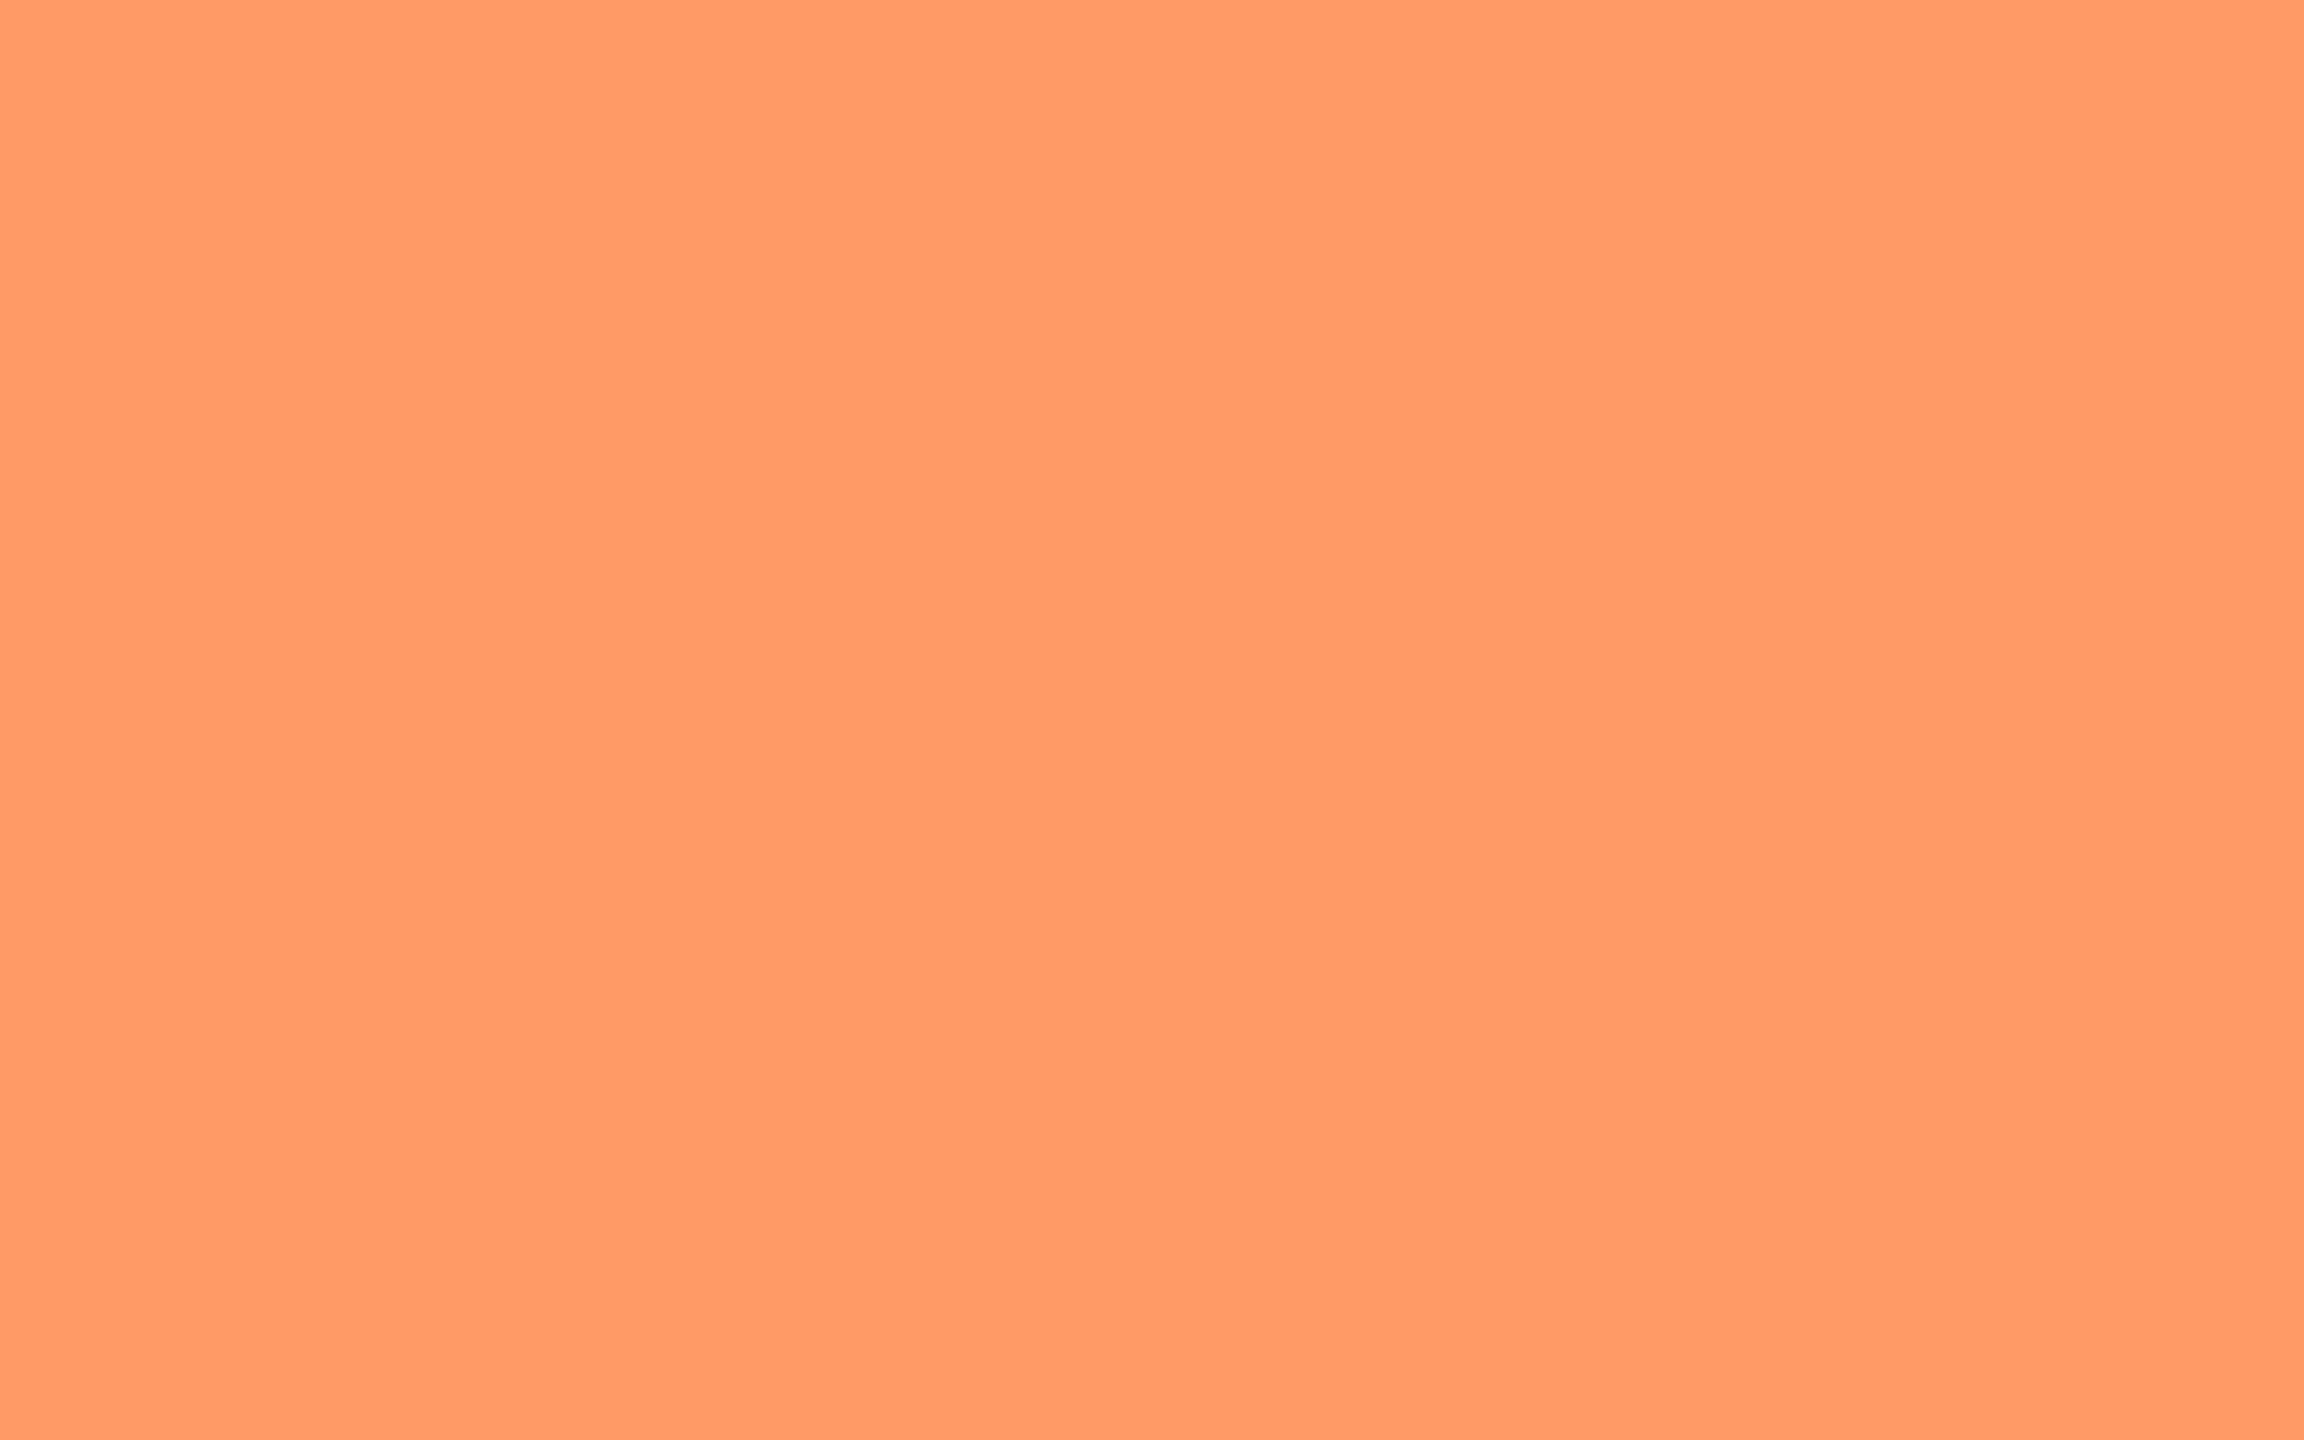 2304x1440 Atomic Tangerine Solid Color Background